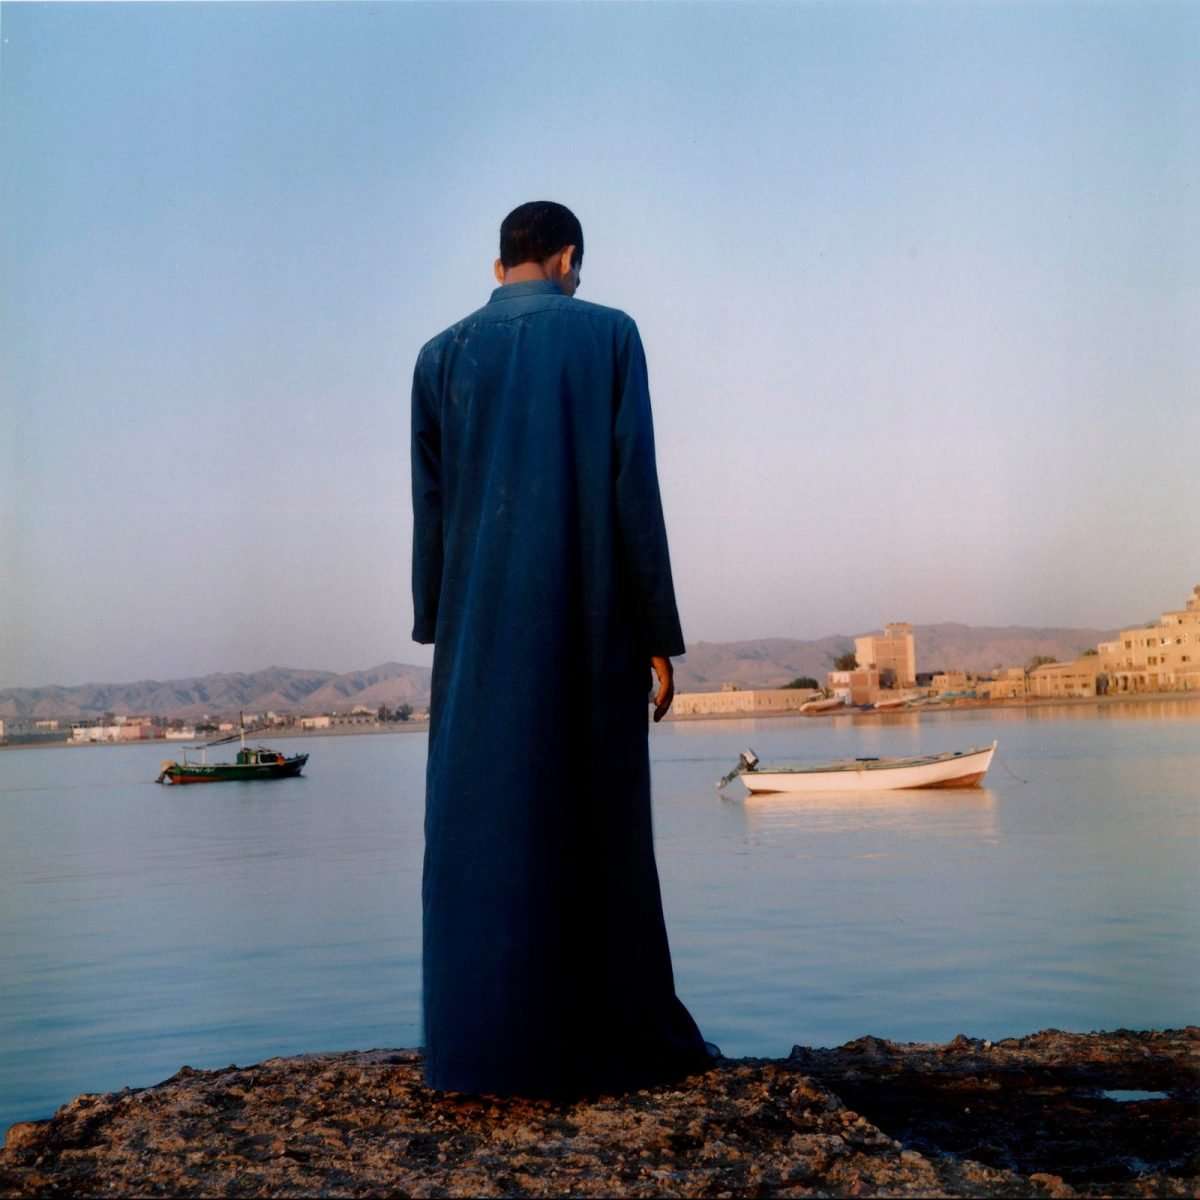 Man looking at the Red Sea, El Qusier, 2003 photograph by Denis Dailleux